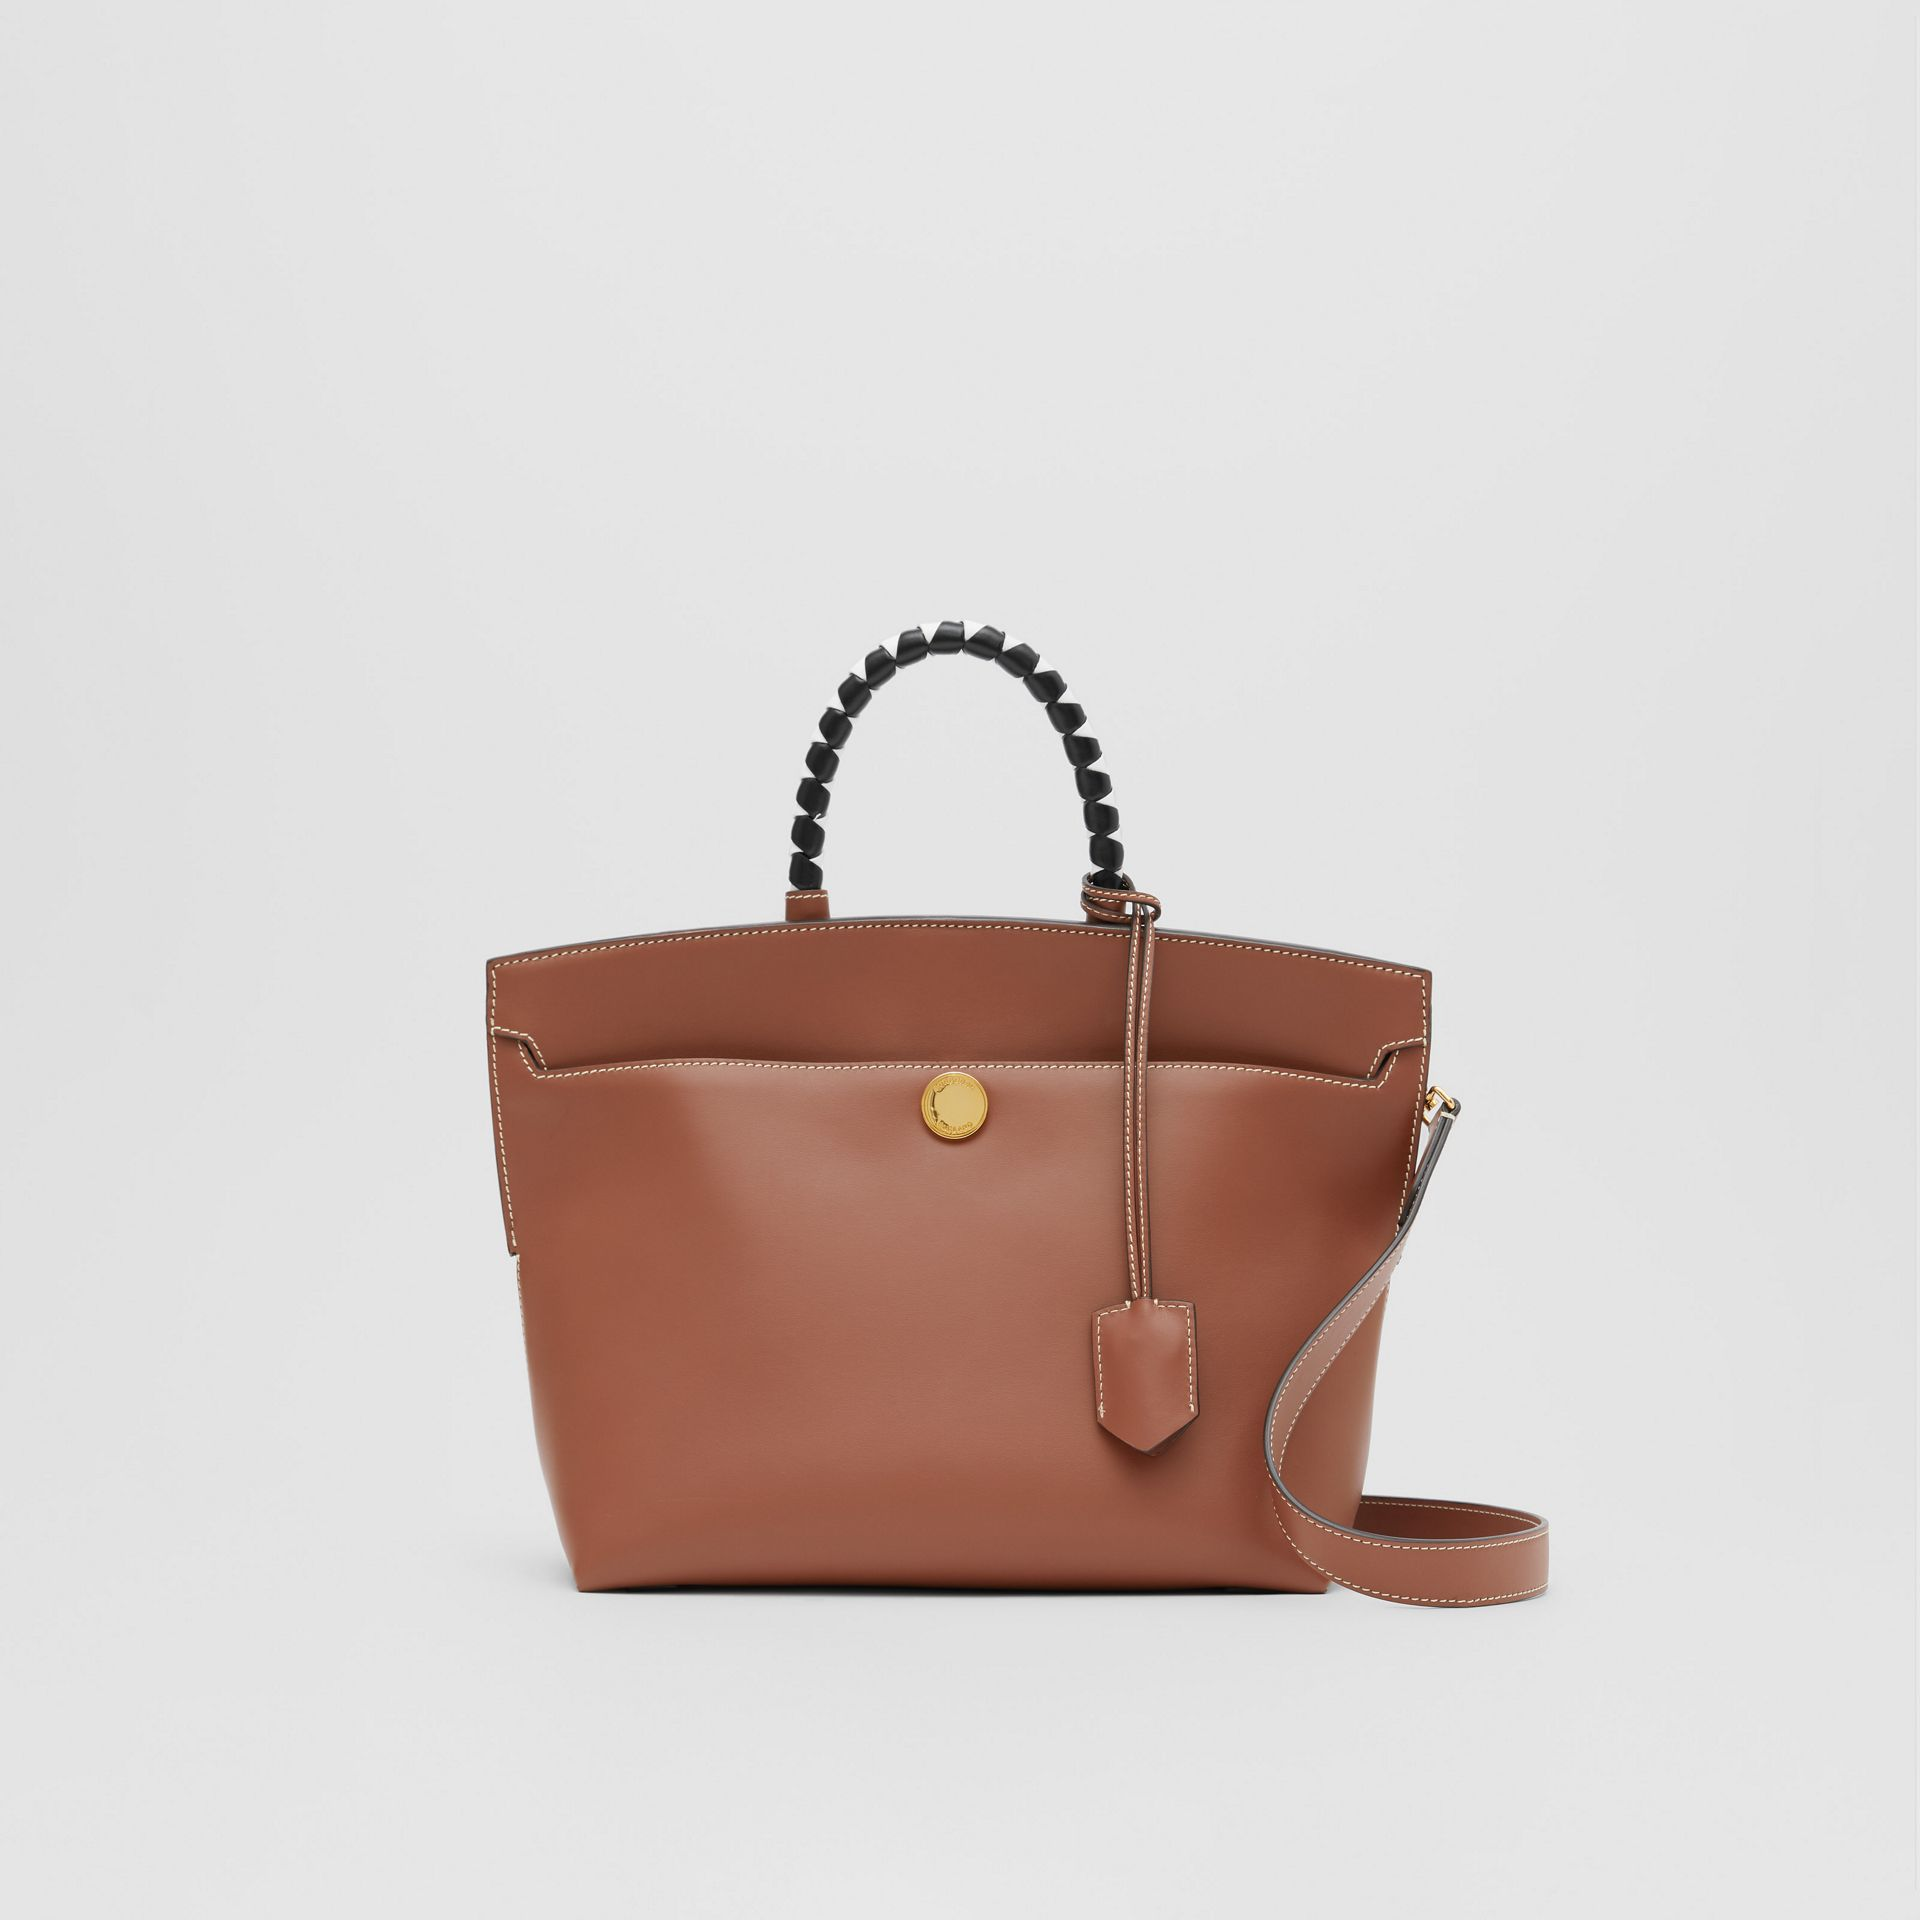 Small Leather Society Top Handle Bag in Tan - Women | Burberry - gallery image 0